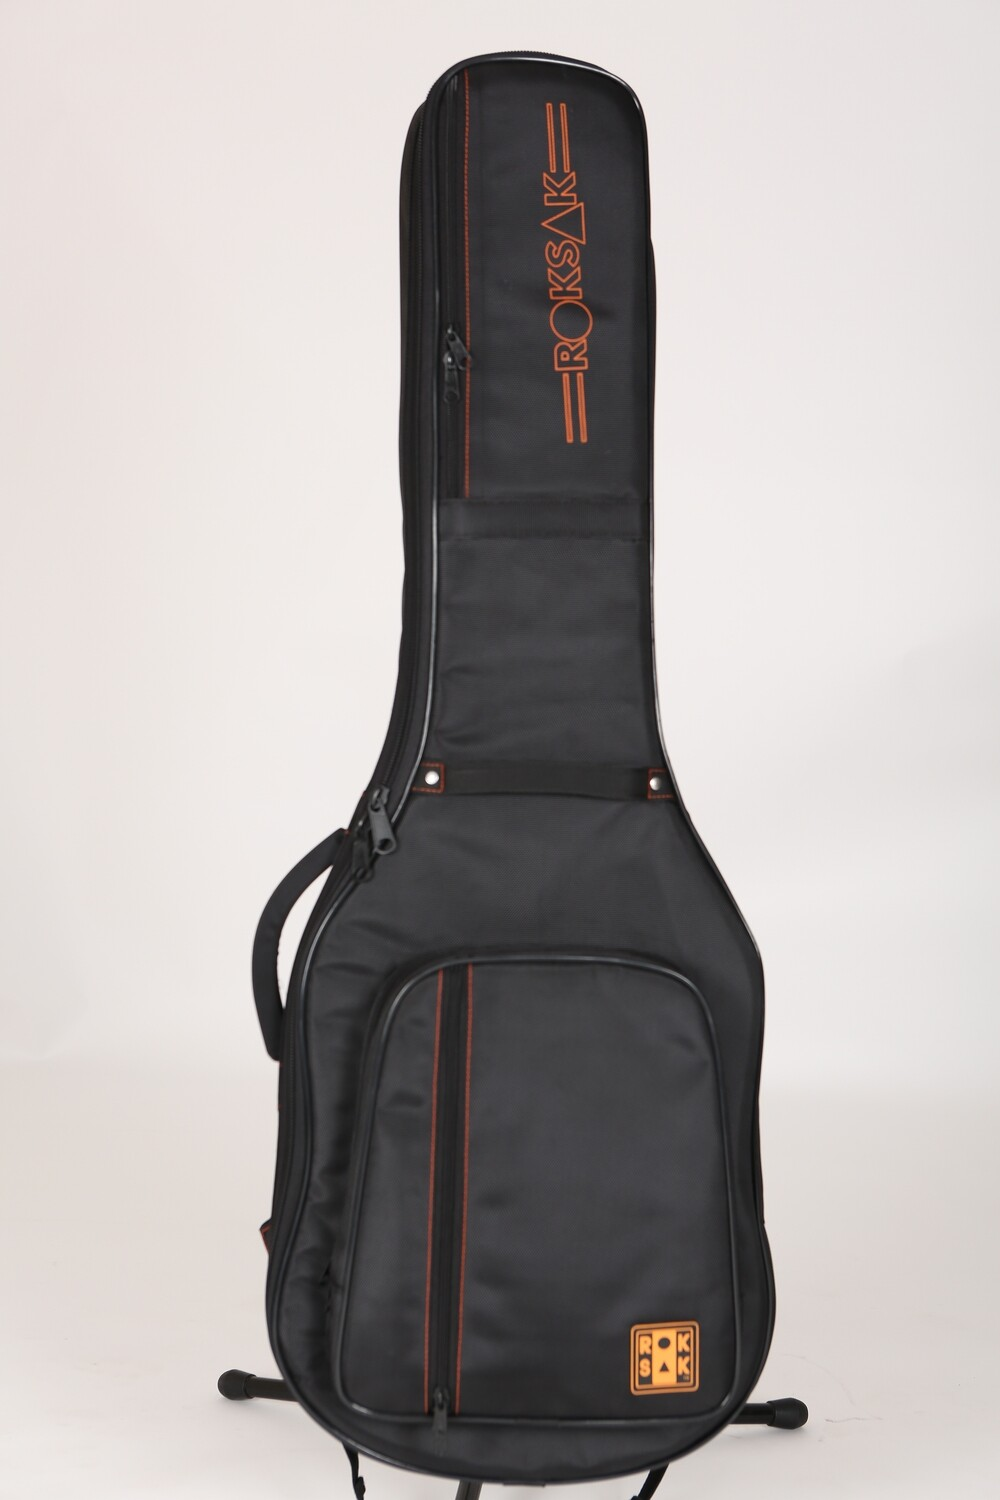 RokSak E30D Pro Series Electric Guitar Gig Bag